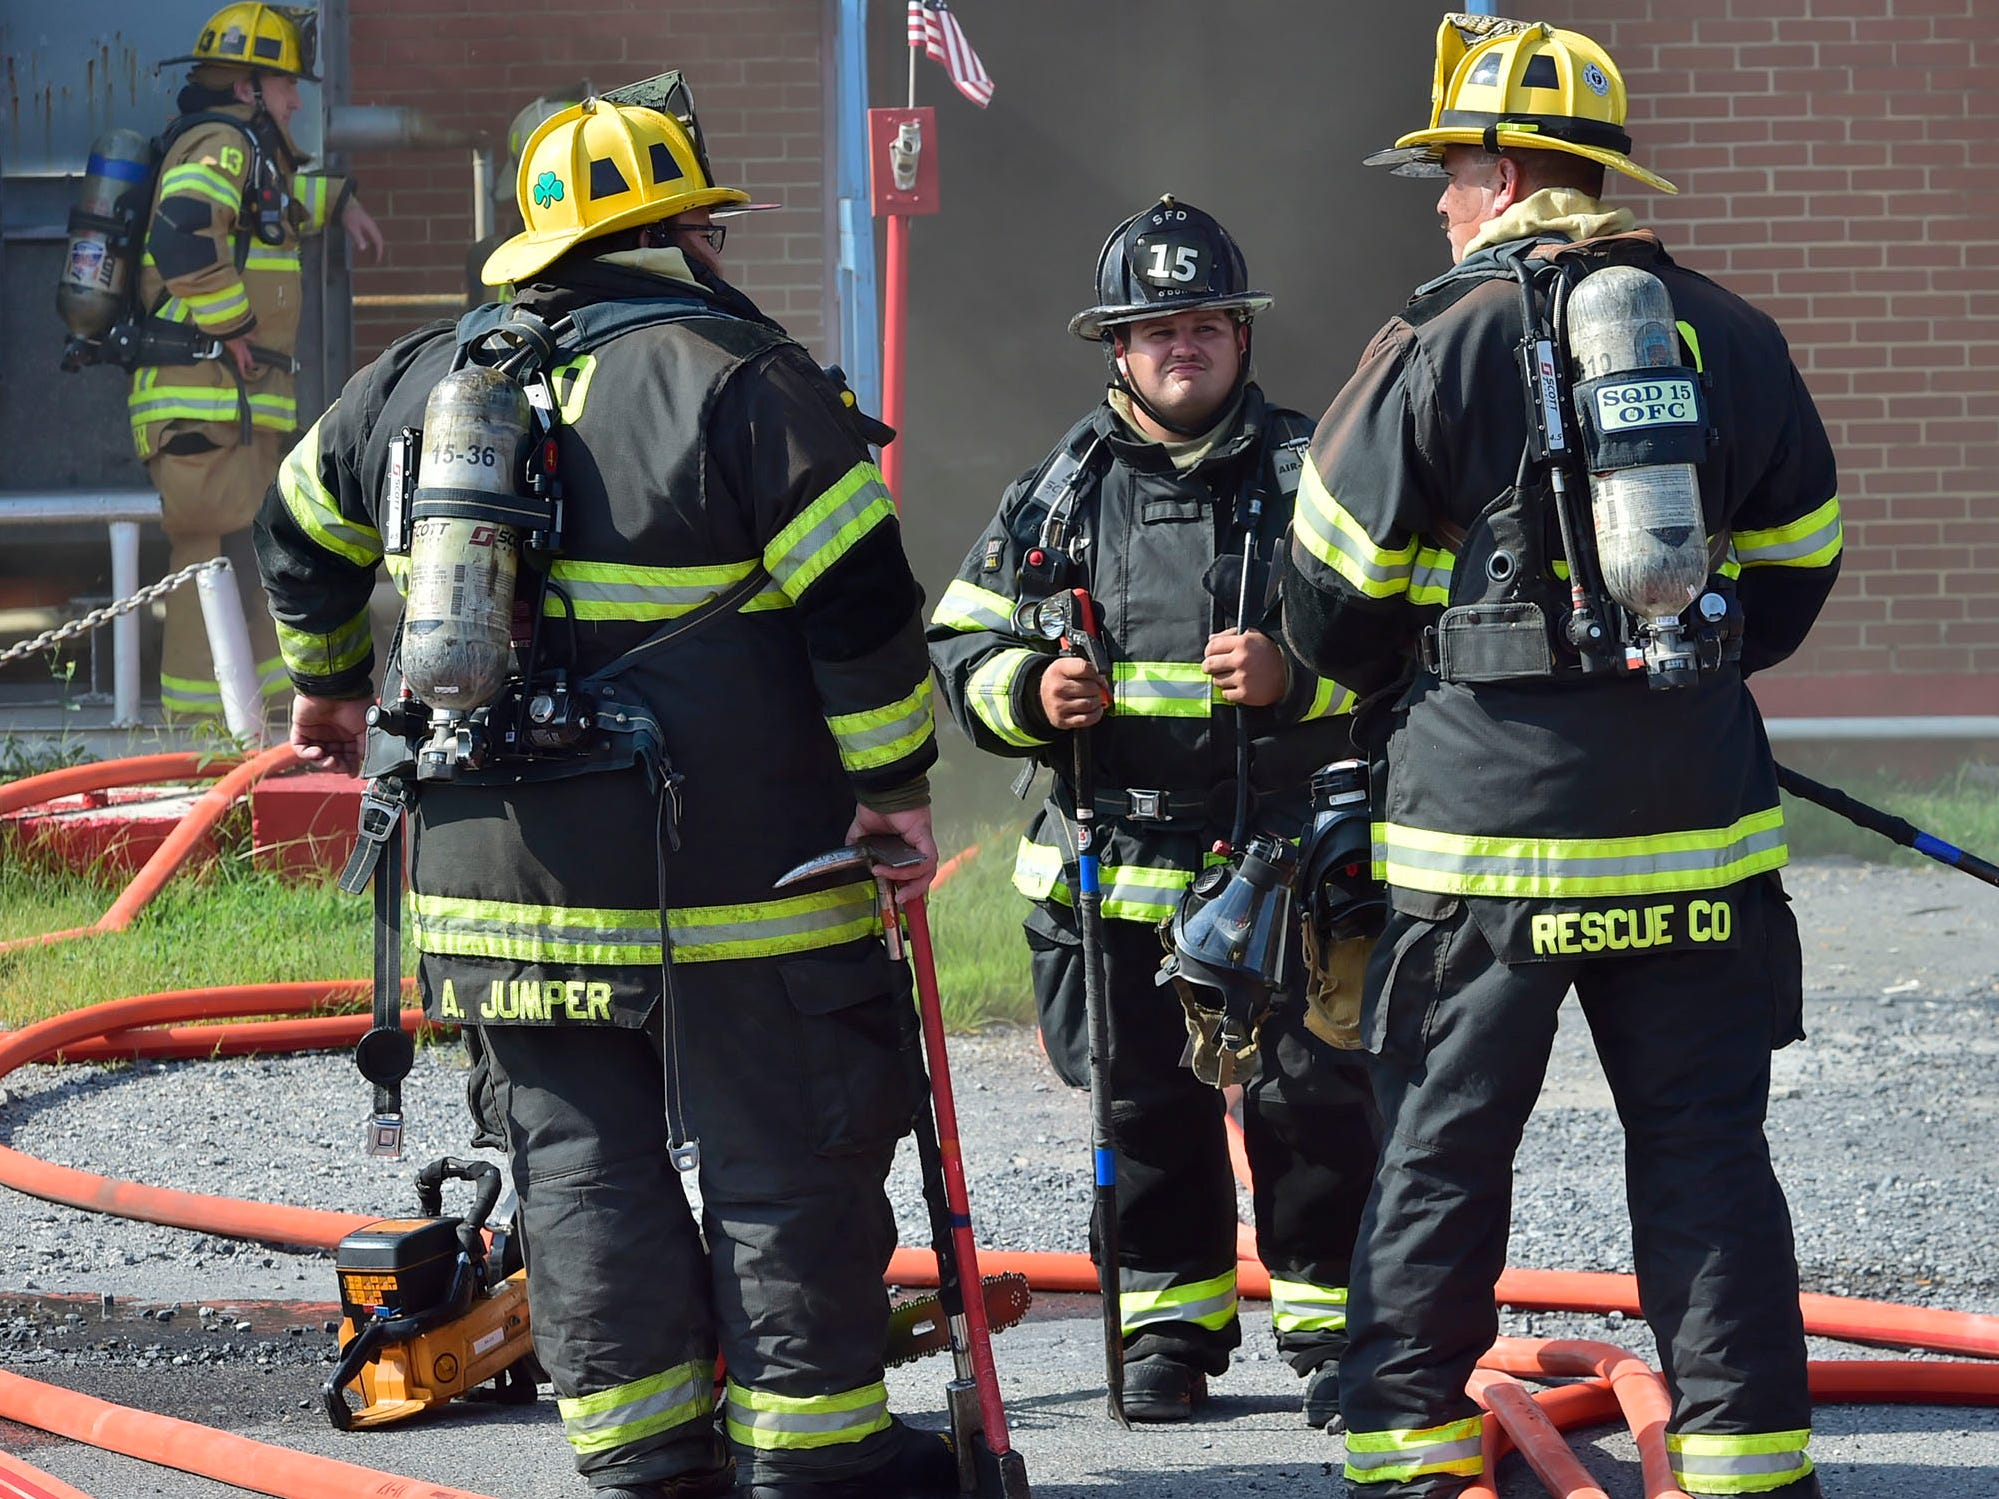 Firefighters are at Zero Ice Corp., 42 Siloam Road, Chambersburg, for a reported fire in the building on Thursday morning, Sept. 6, 2018. The fire was contained to the interior of the building.